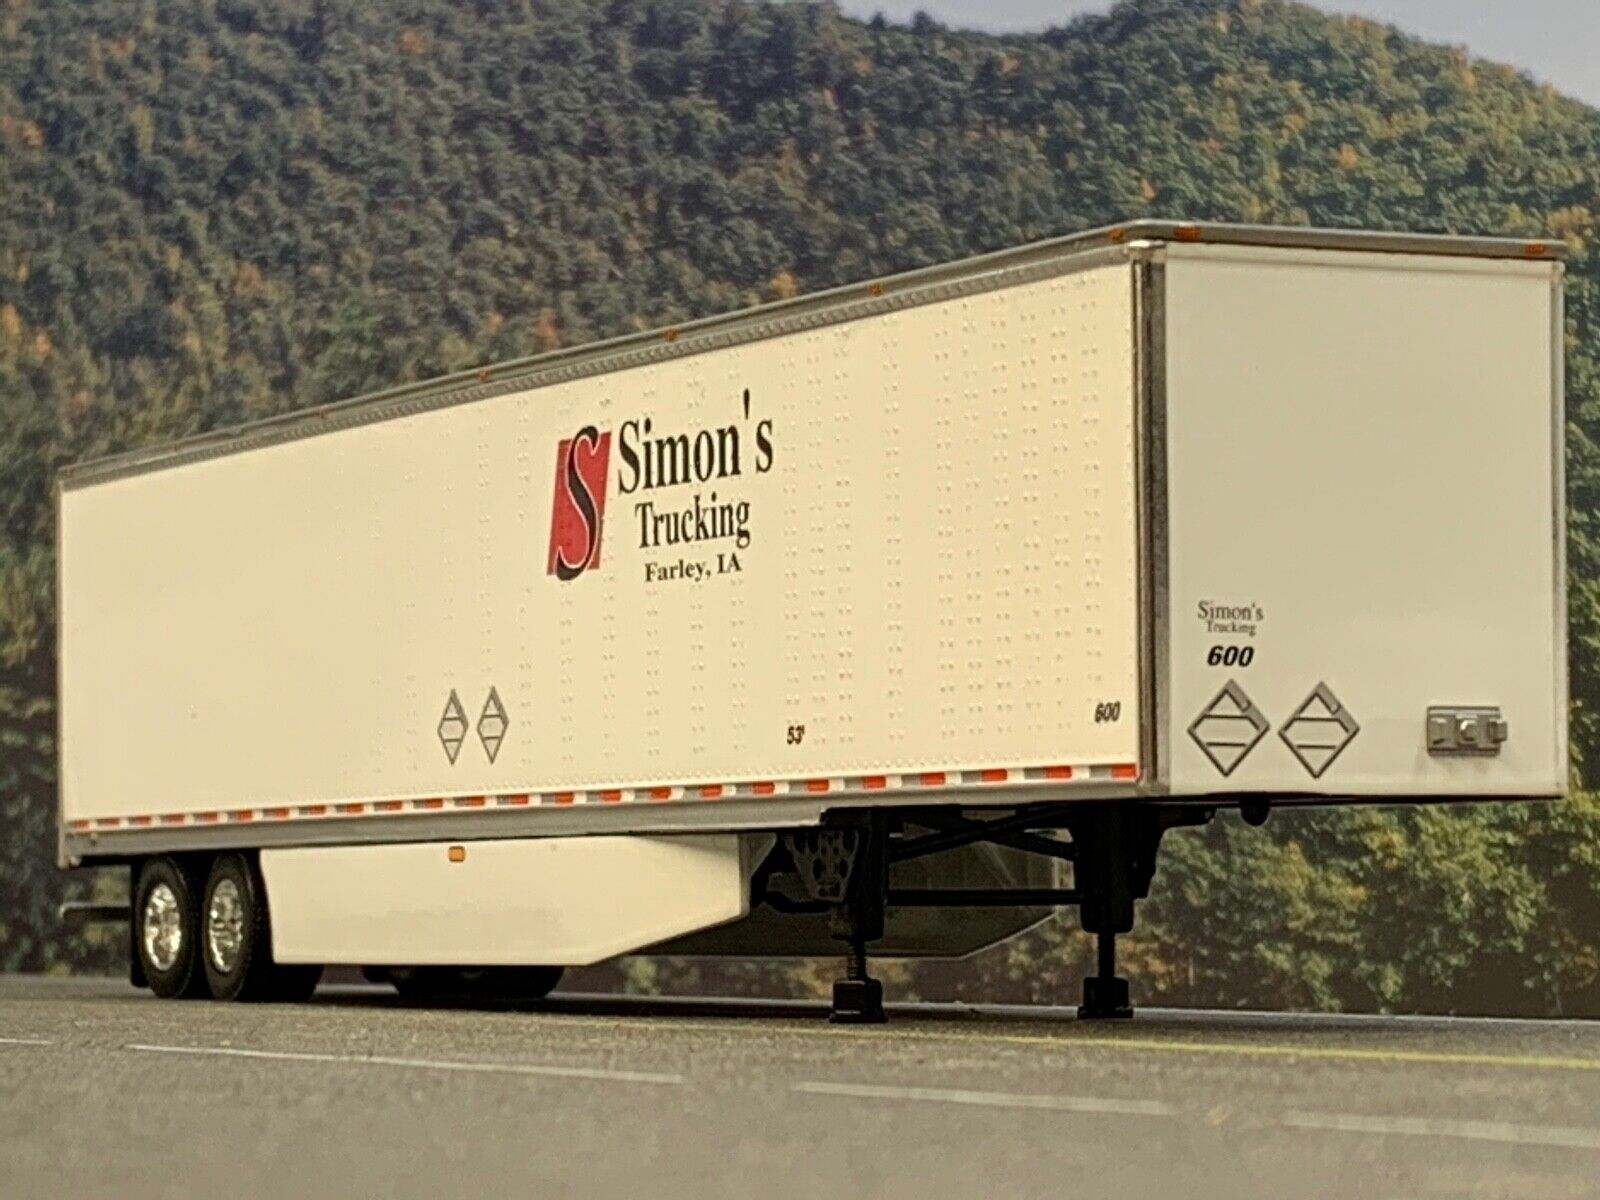 1/64 DCP SIMON'S TRUCKING  53' UTILITY 3000D-X DRY VAN TRAILER W/ WIND SKIRTS